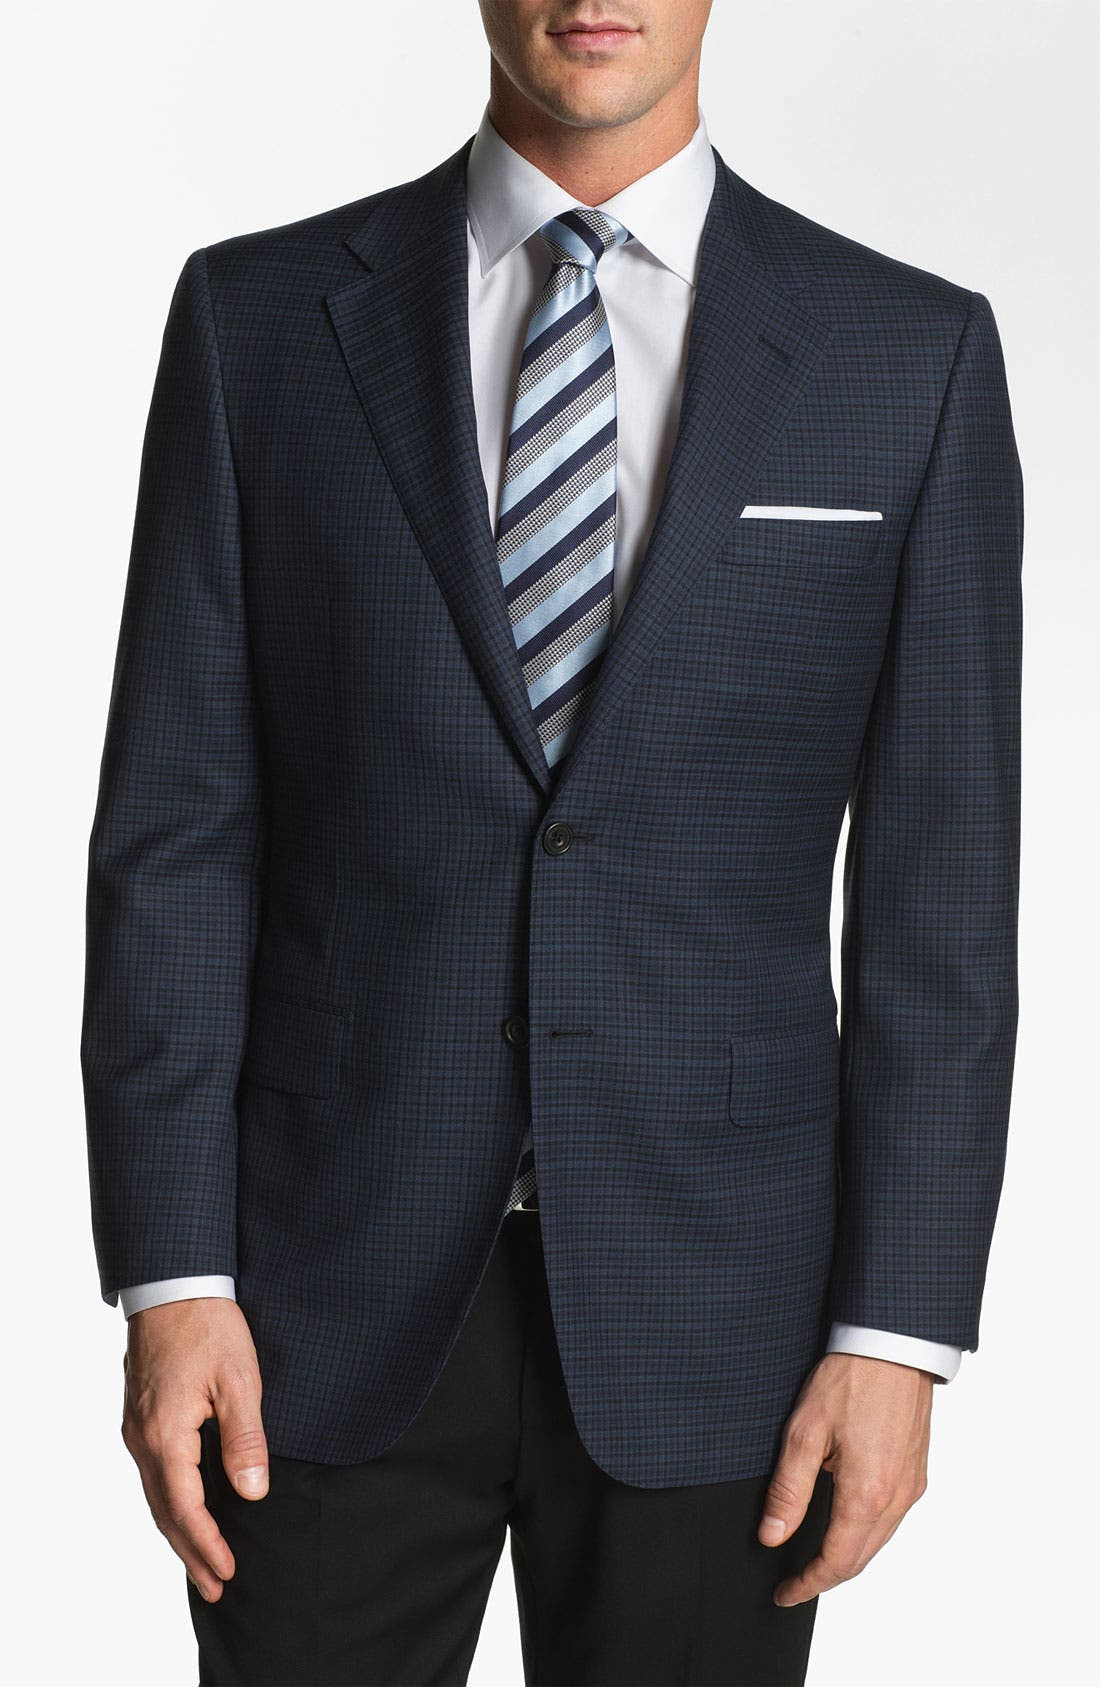 Main Image - Hickey Freeman Plaid Sportcoat